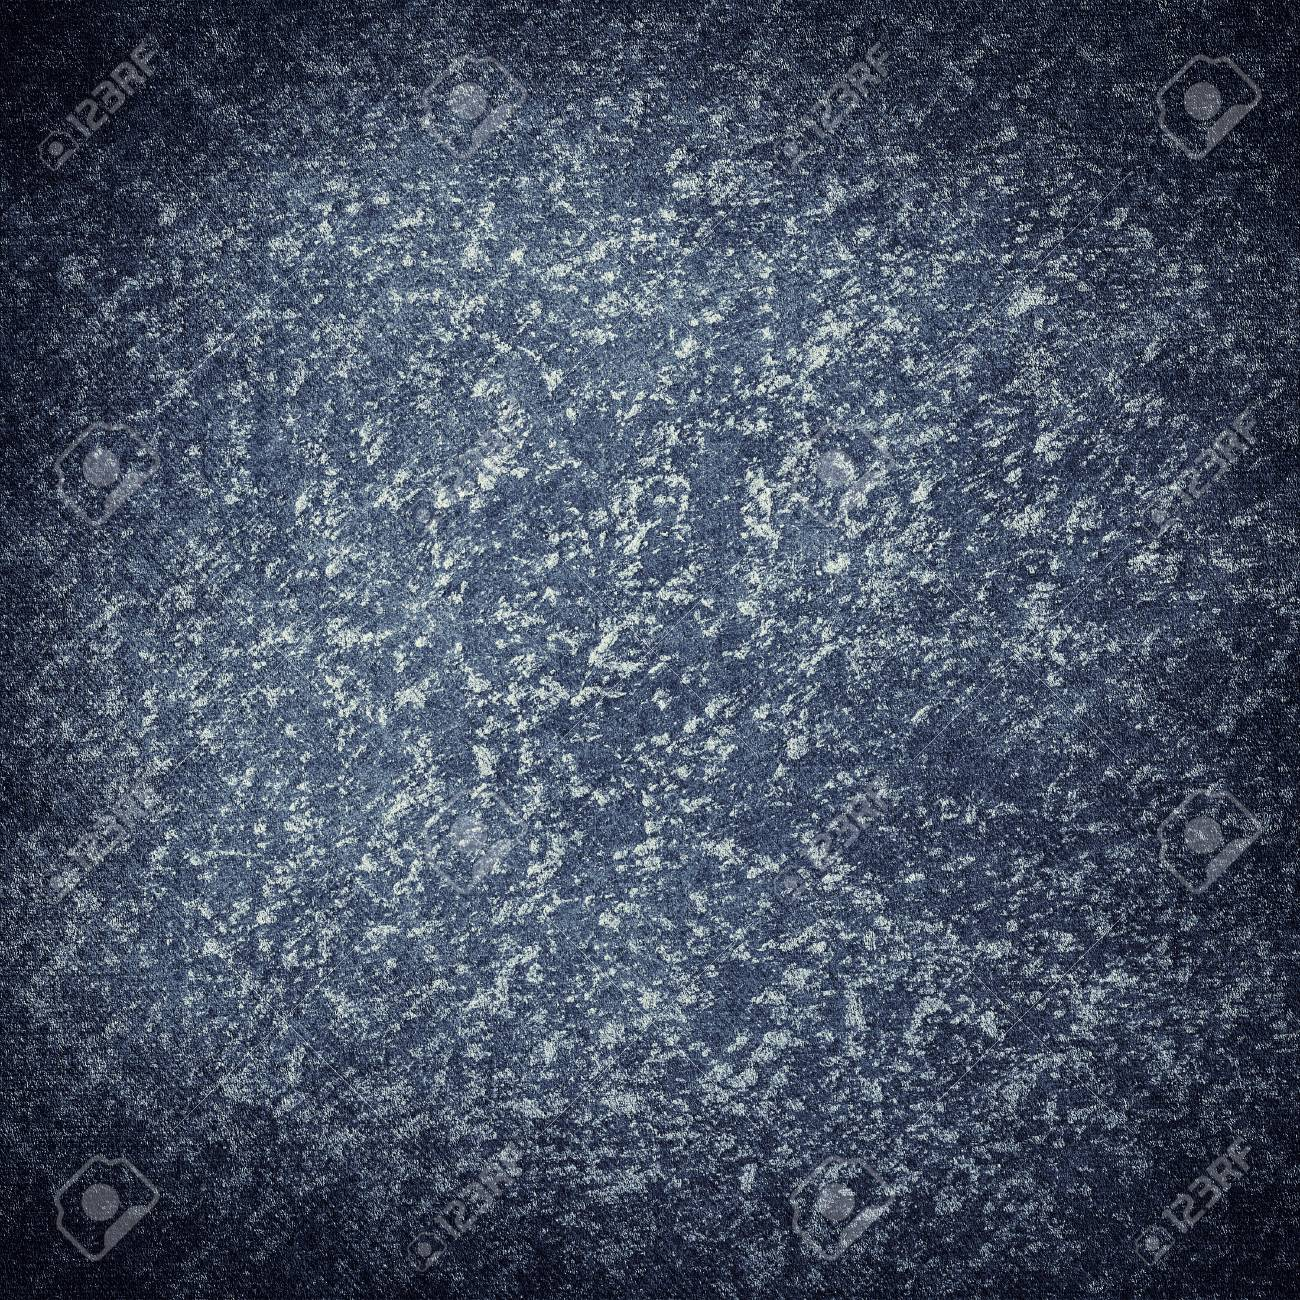 Grunge background or texture Stock Photo - 27087038